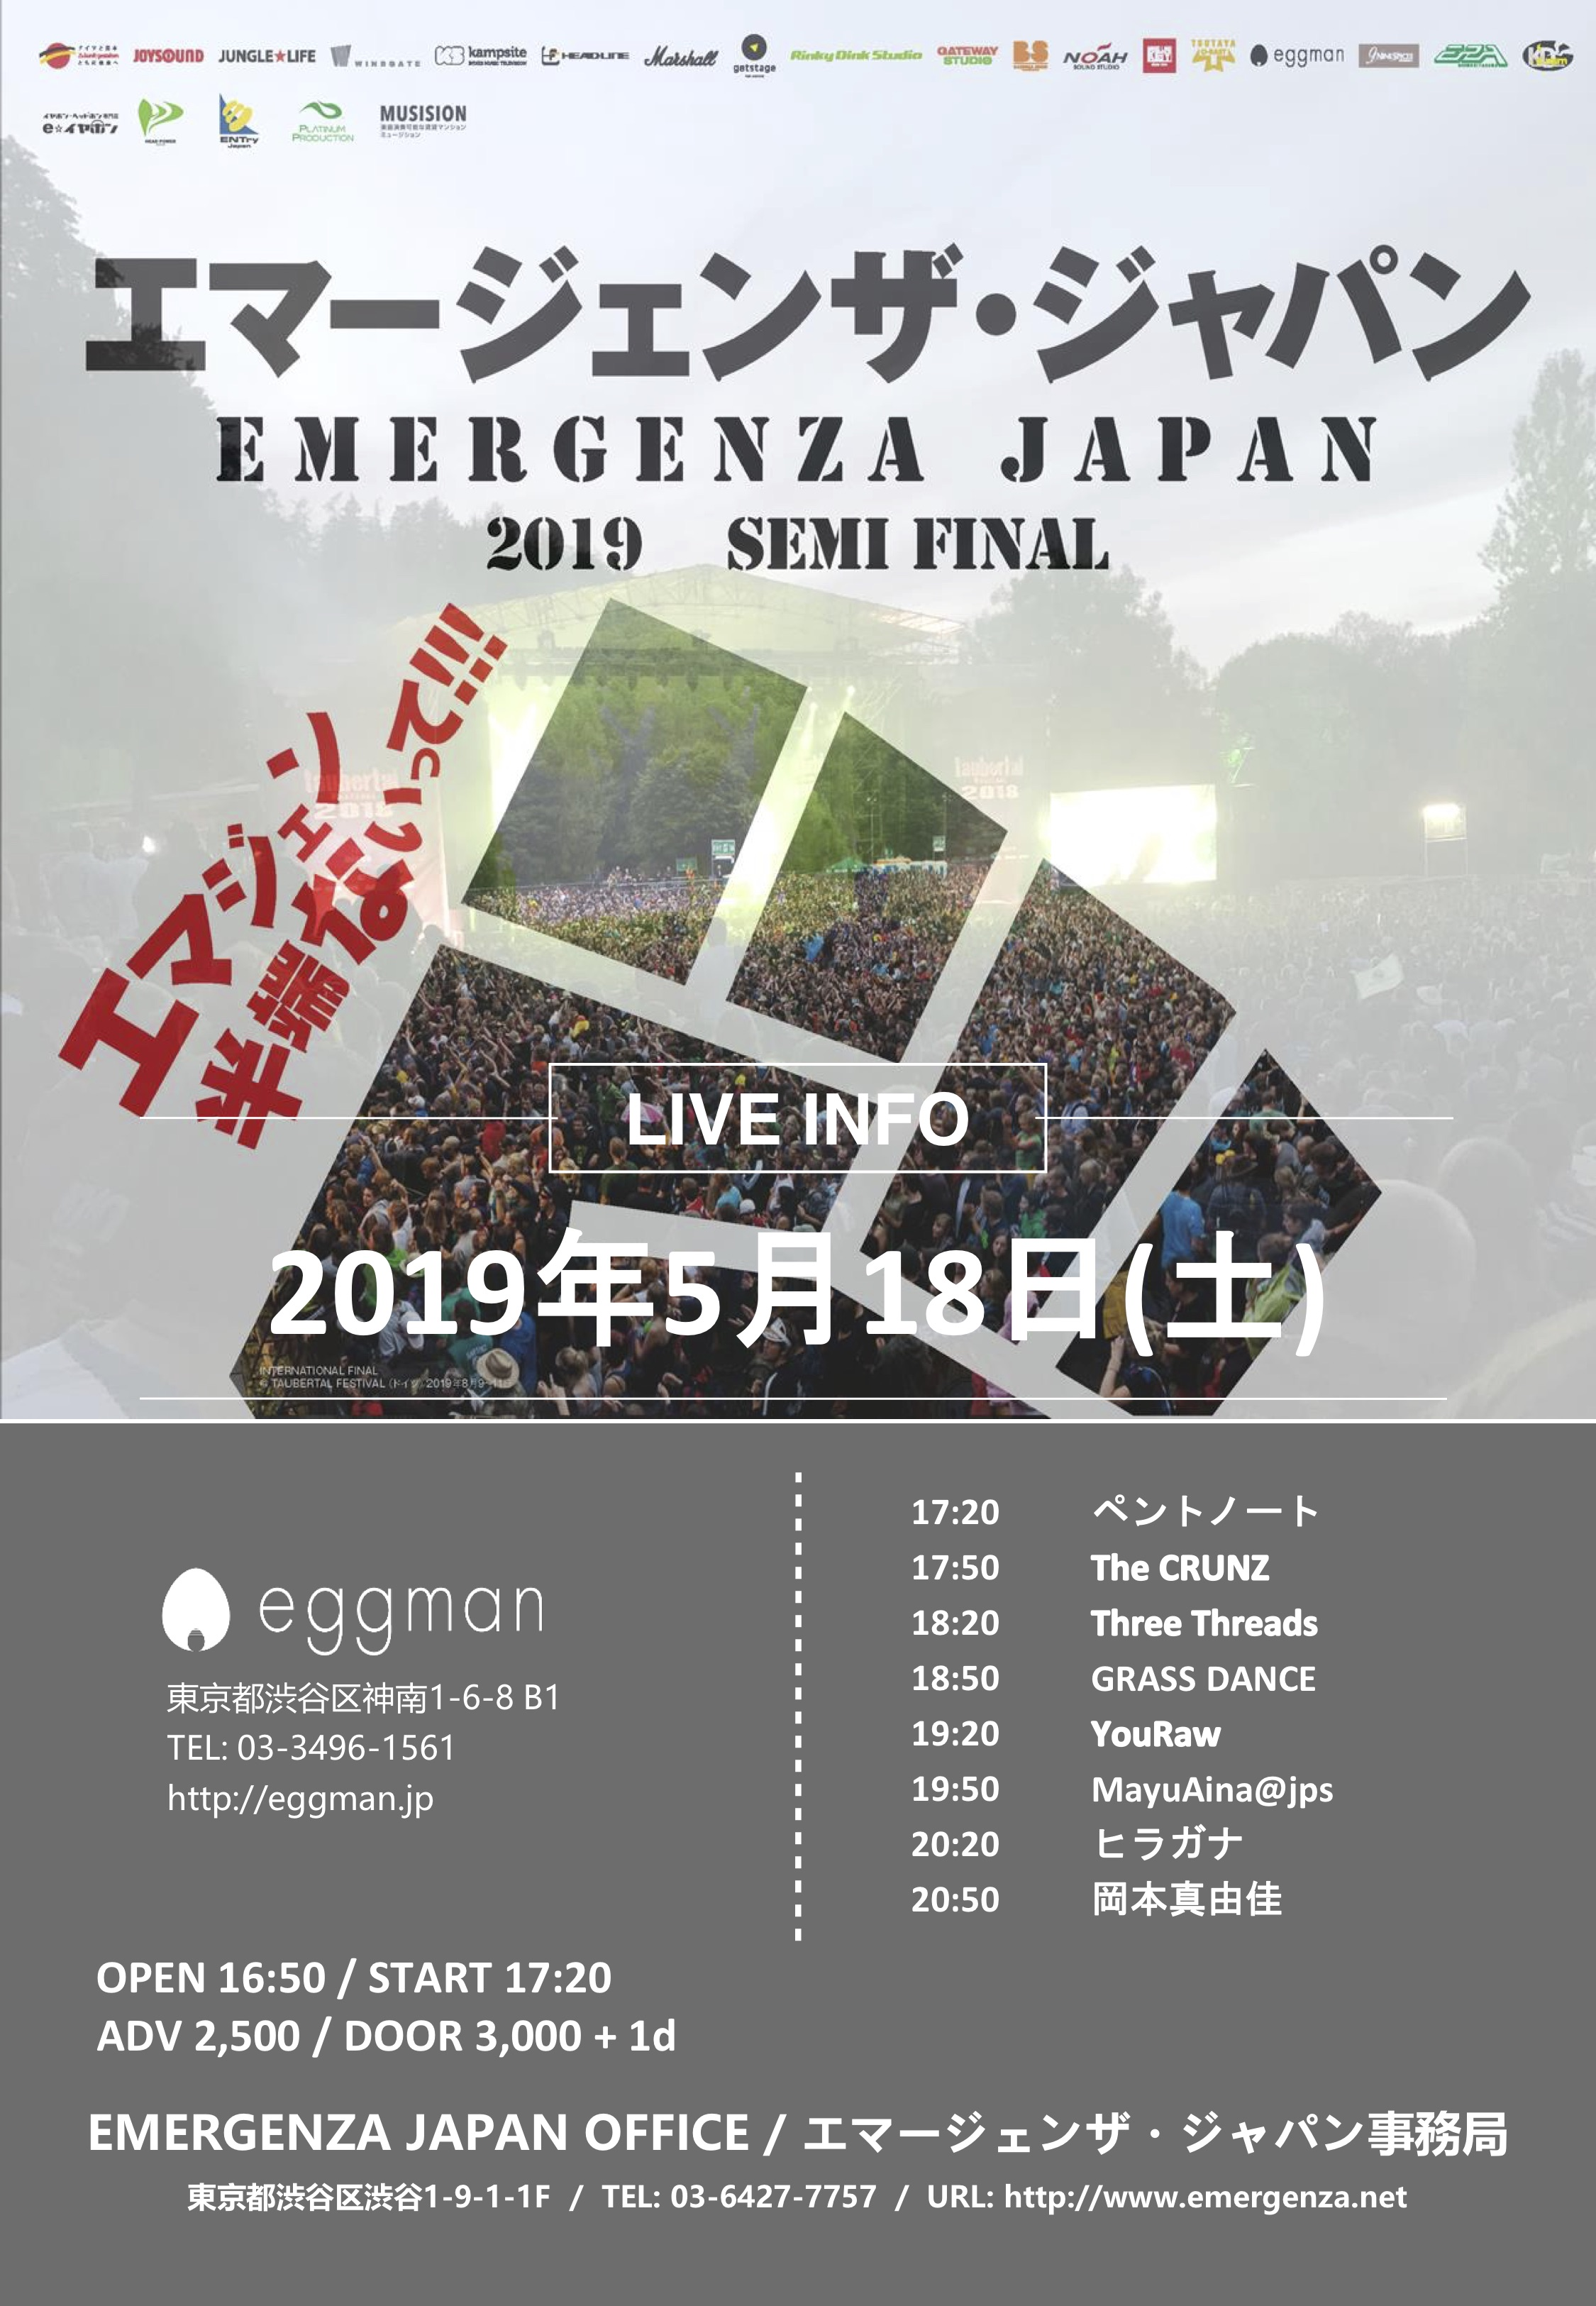 Emergenza Japan 2019 Semi Final Seriese